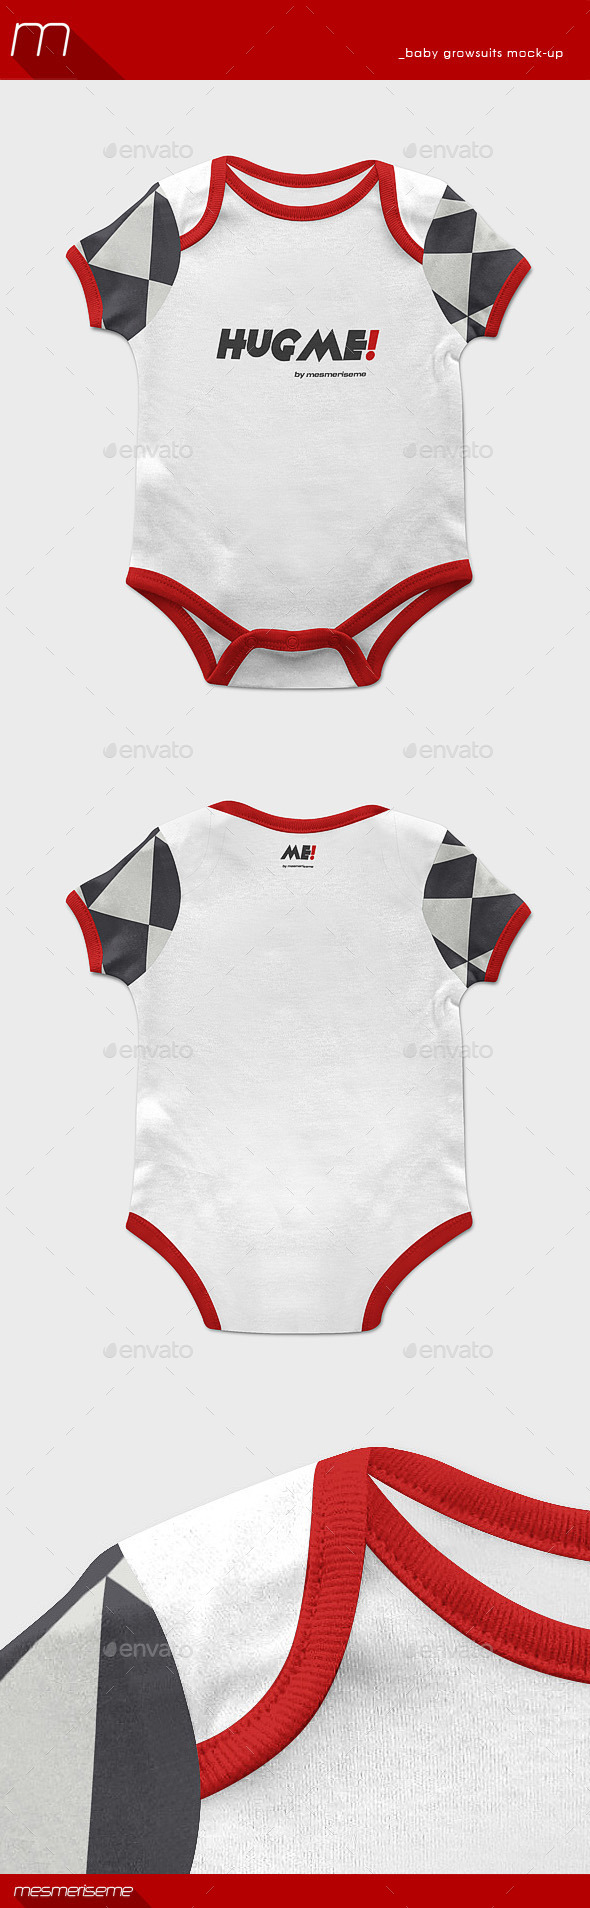 GraphicRiver Baby Growsuit Mock-up 9511214